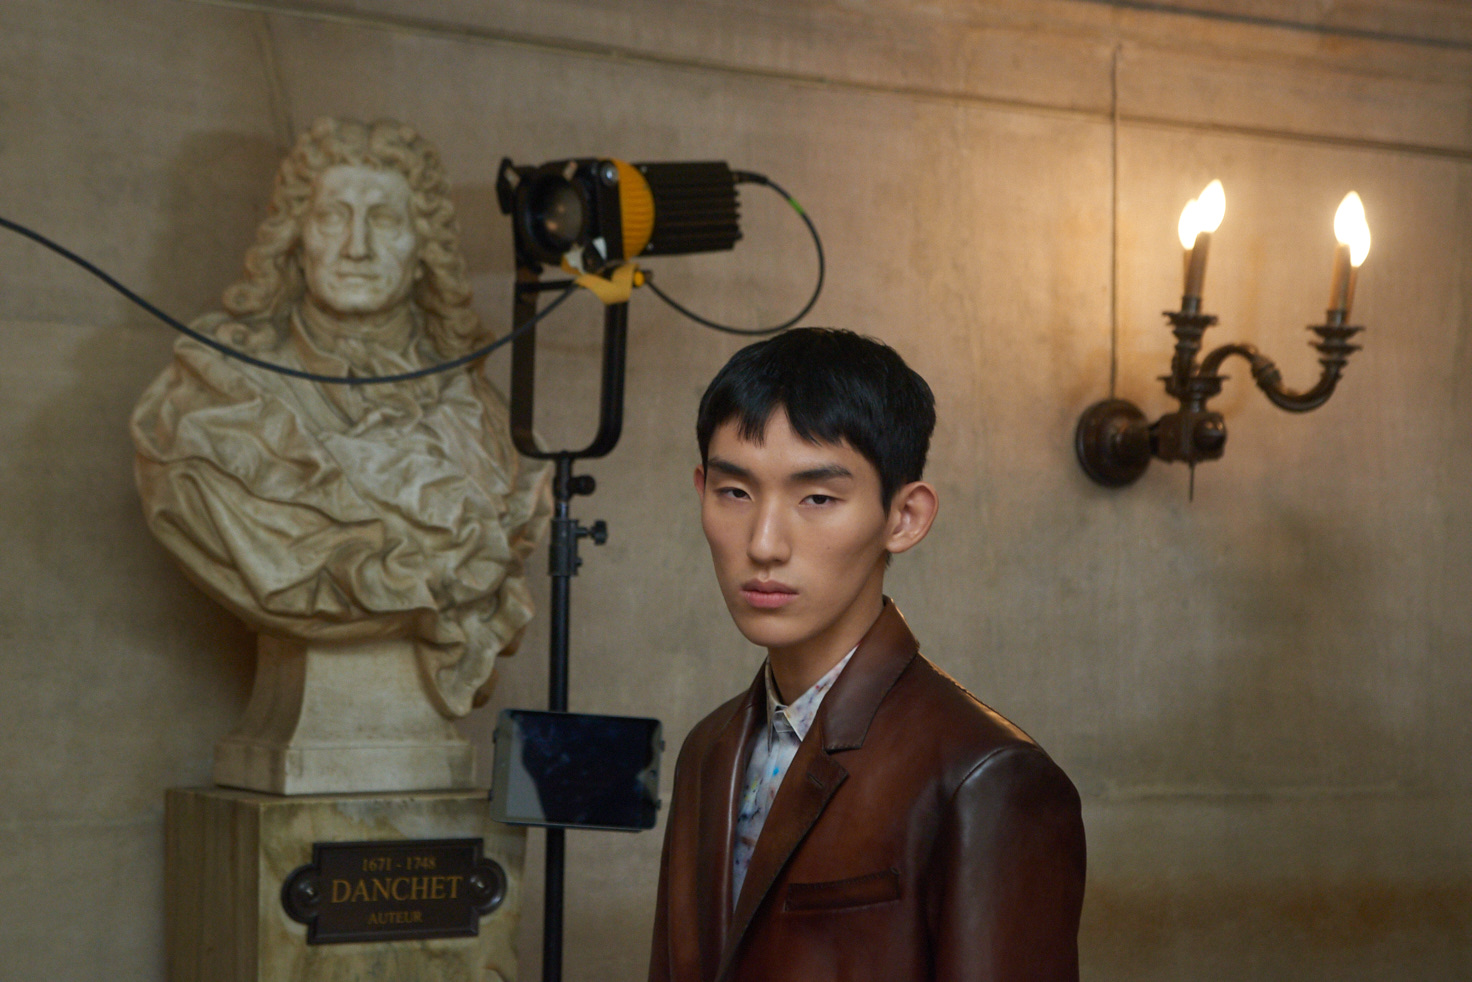 BERLUTI_FW19_Backstage_BTBonline_Behind_The_Blinds_Magazine_Hugo denis-queinec_AES2111.jpg